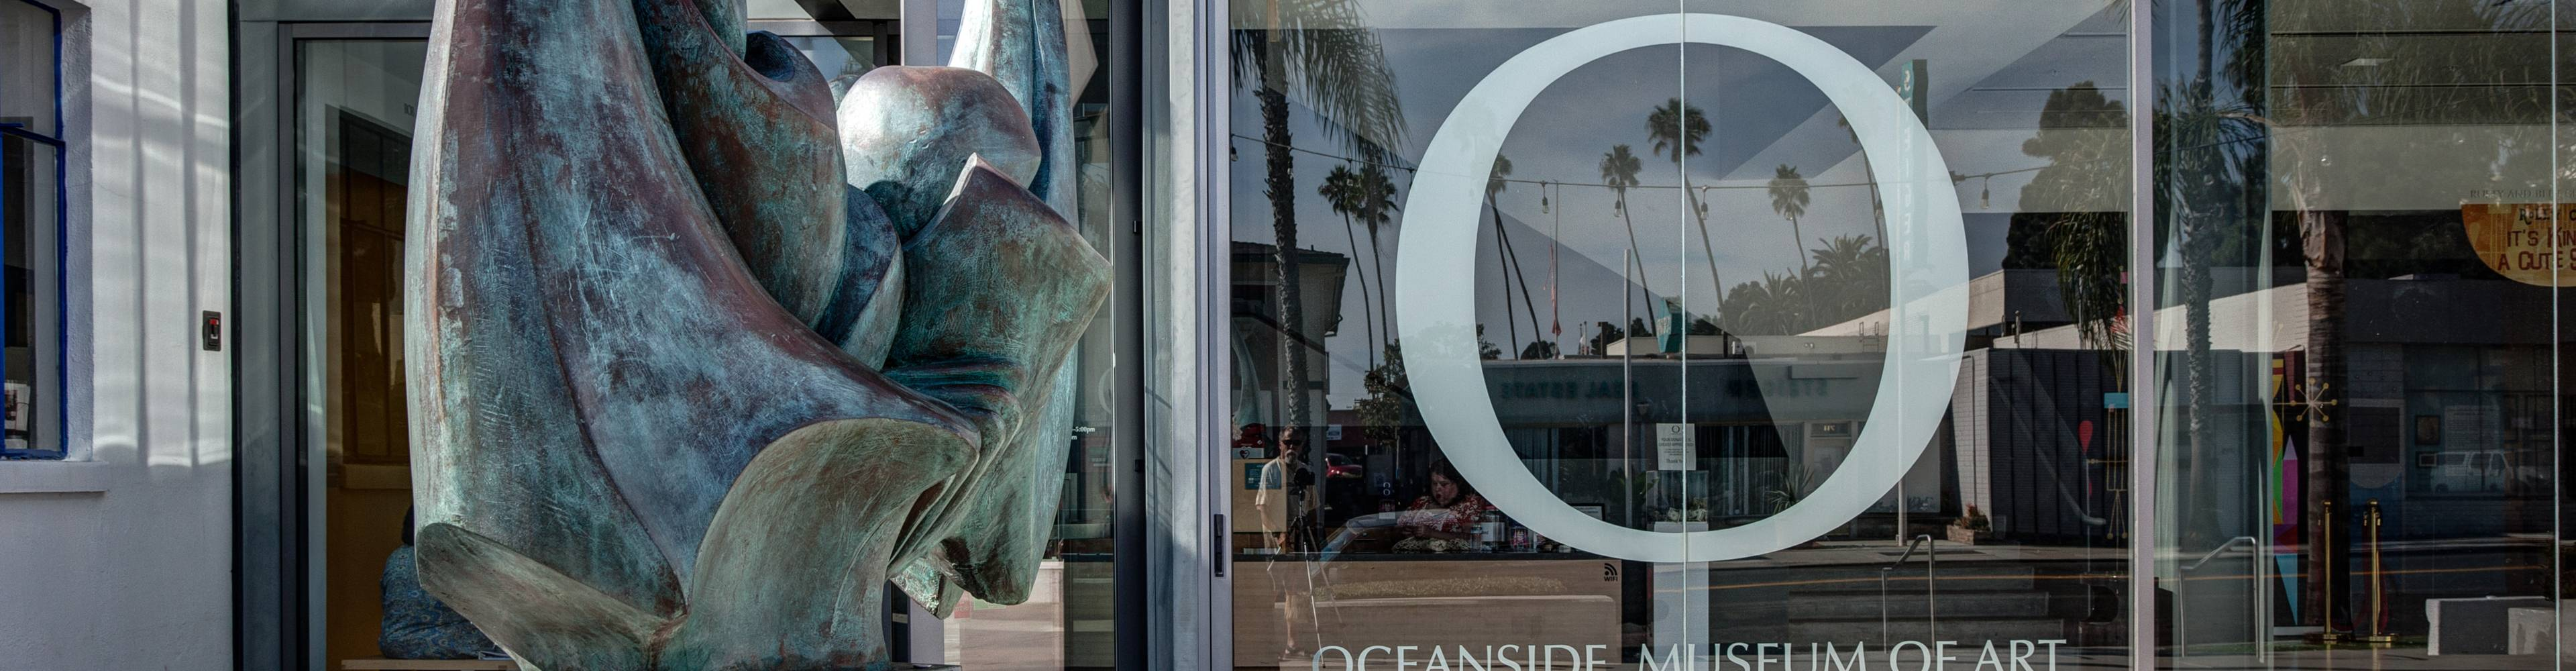 virmuze museum Oceanside Museum of Art main banner